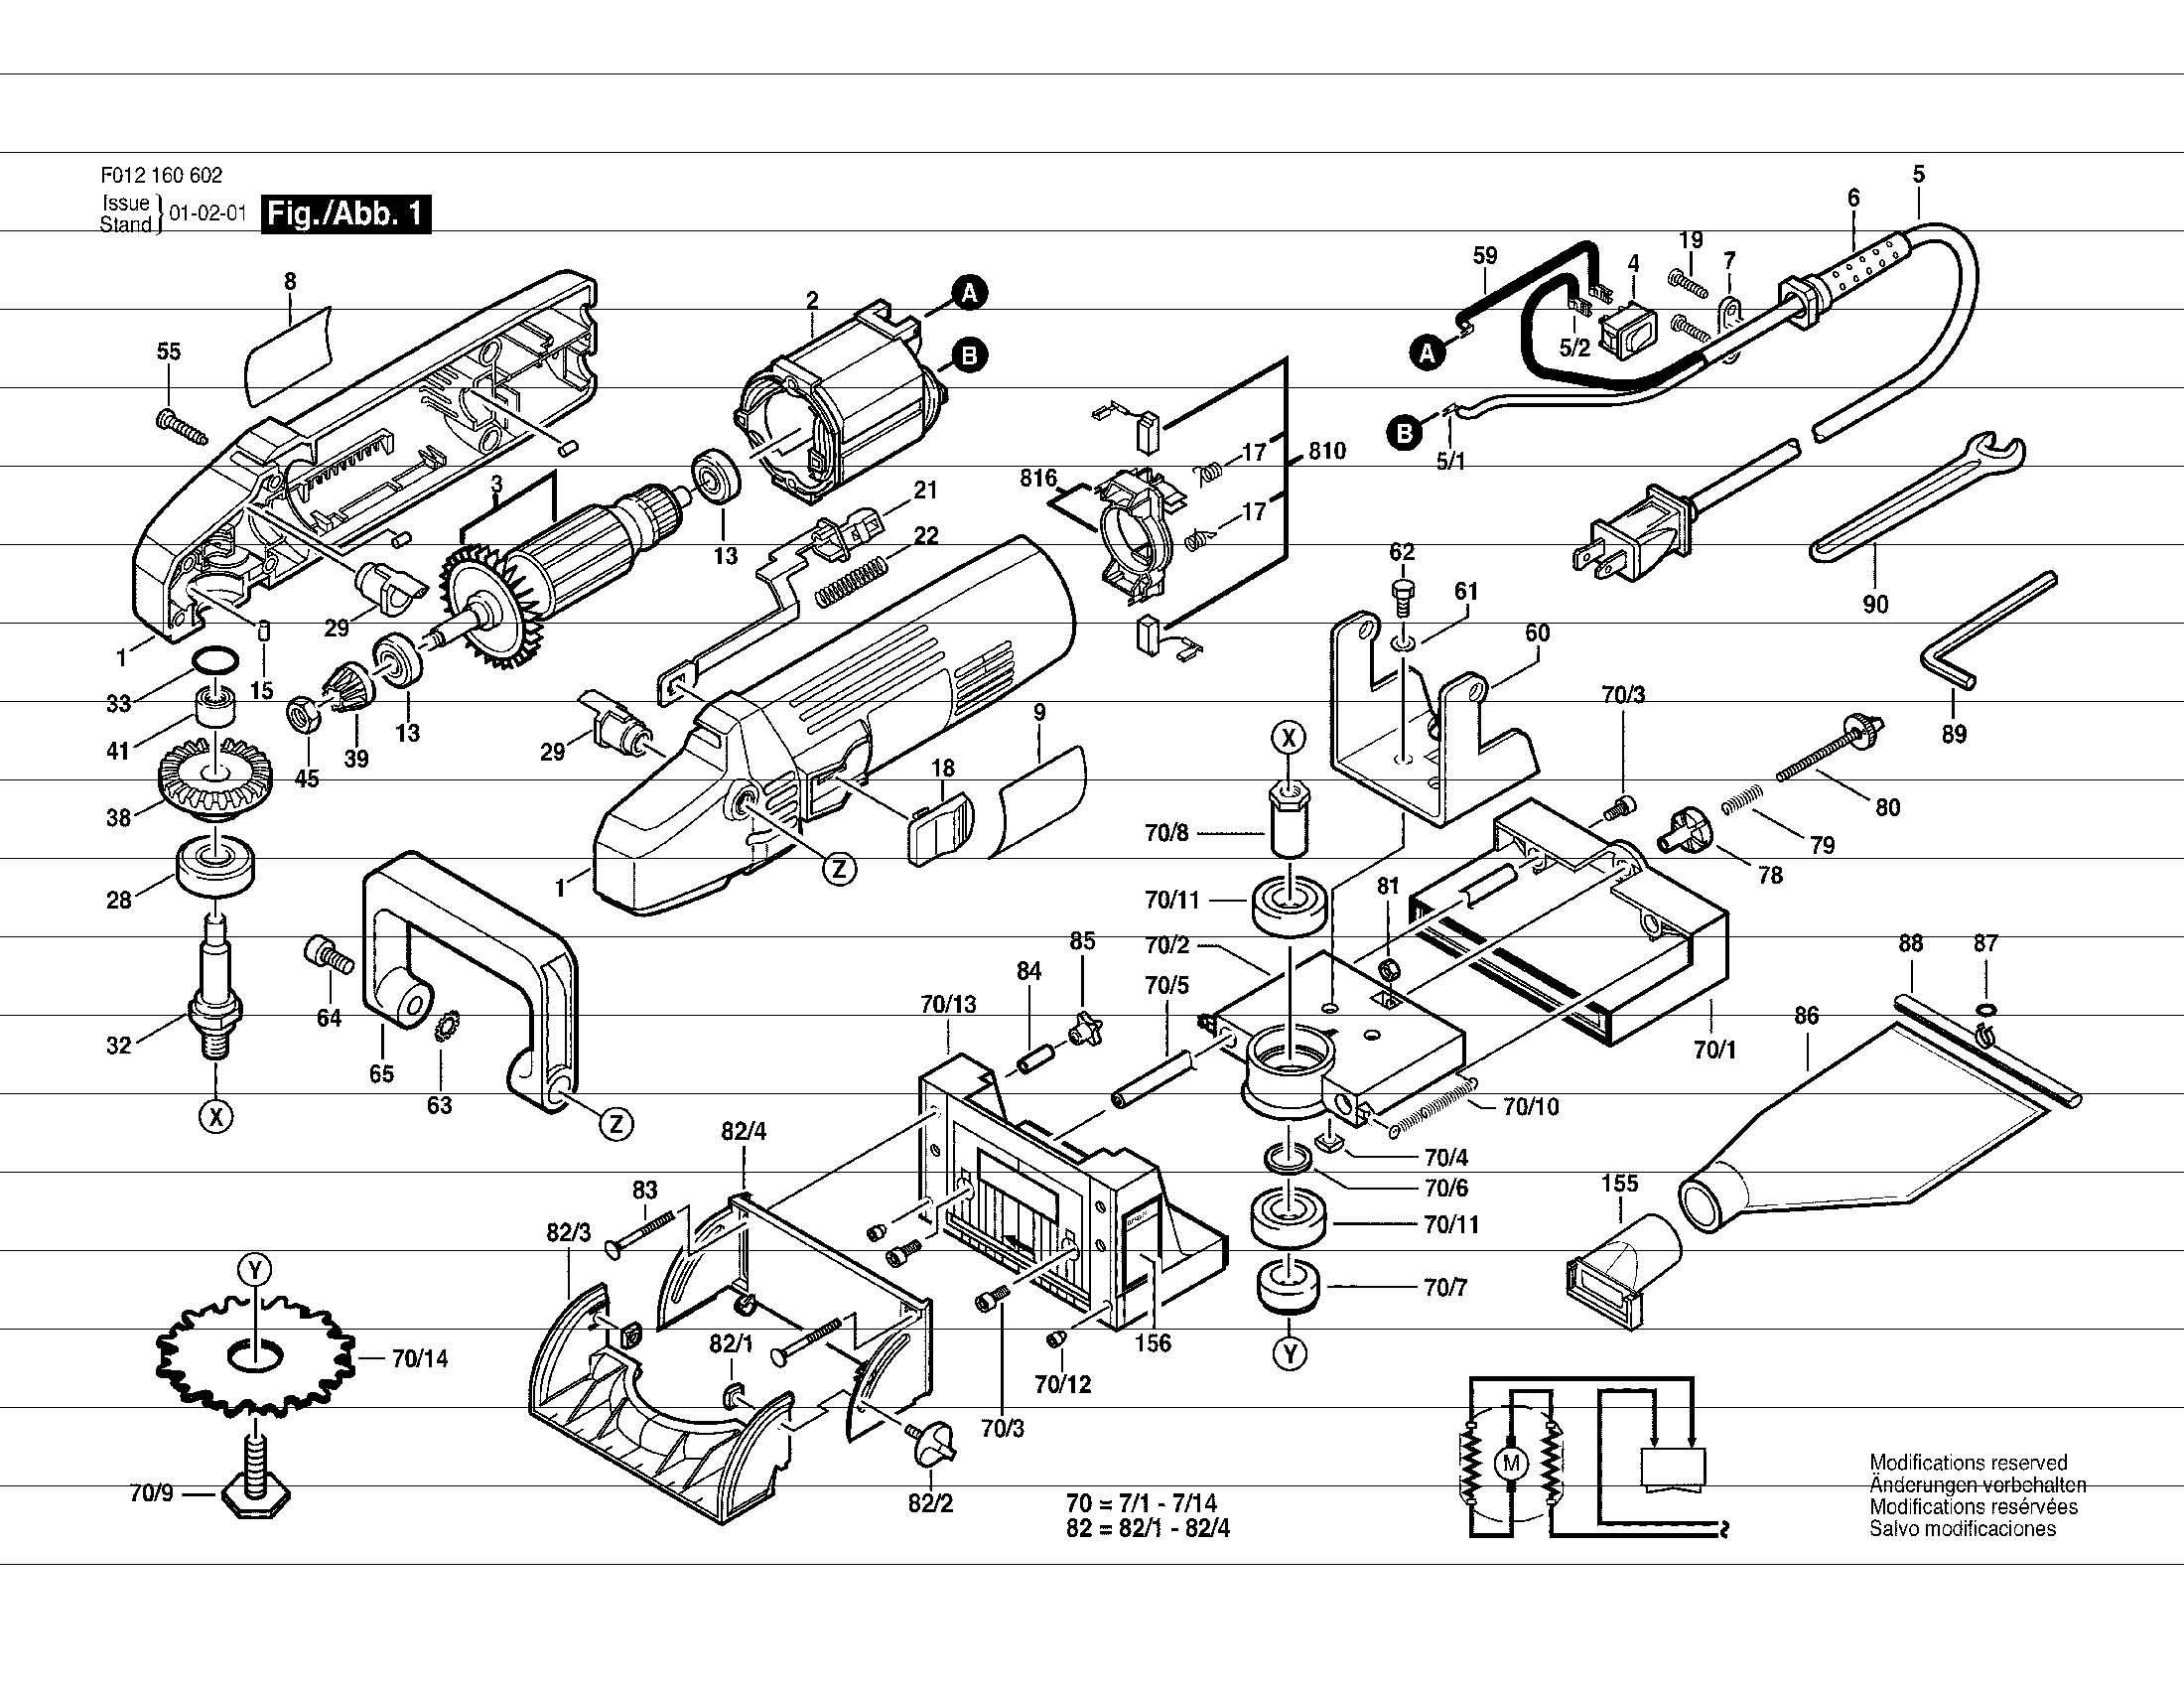 Skil Hd Plate Joiner Power Tool Schematic